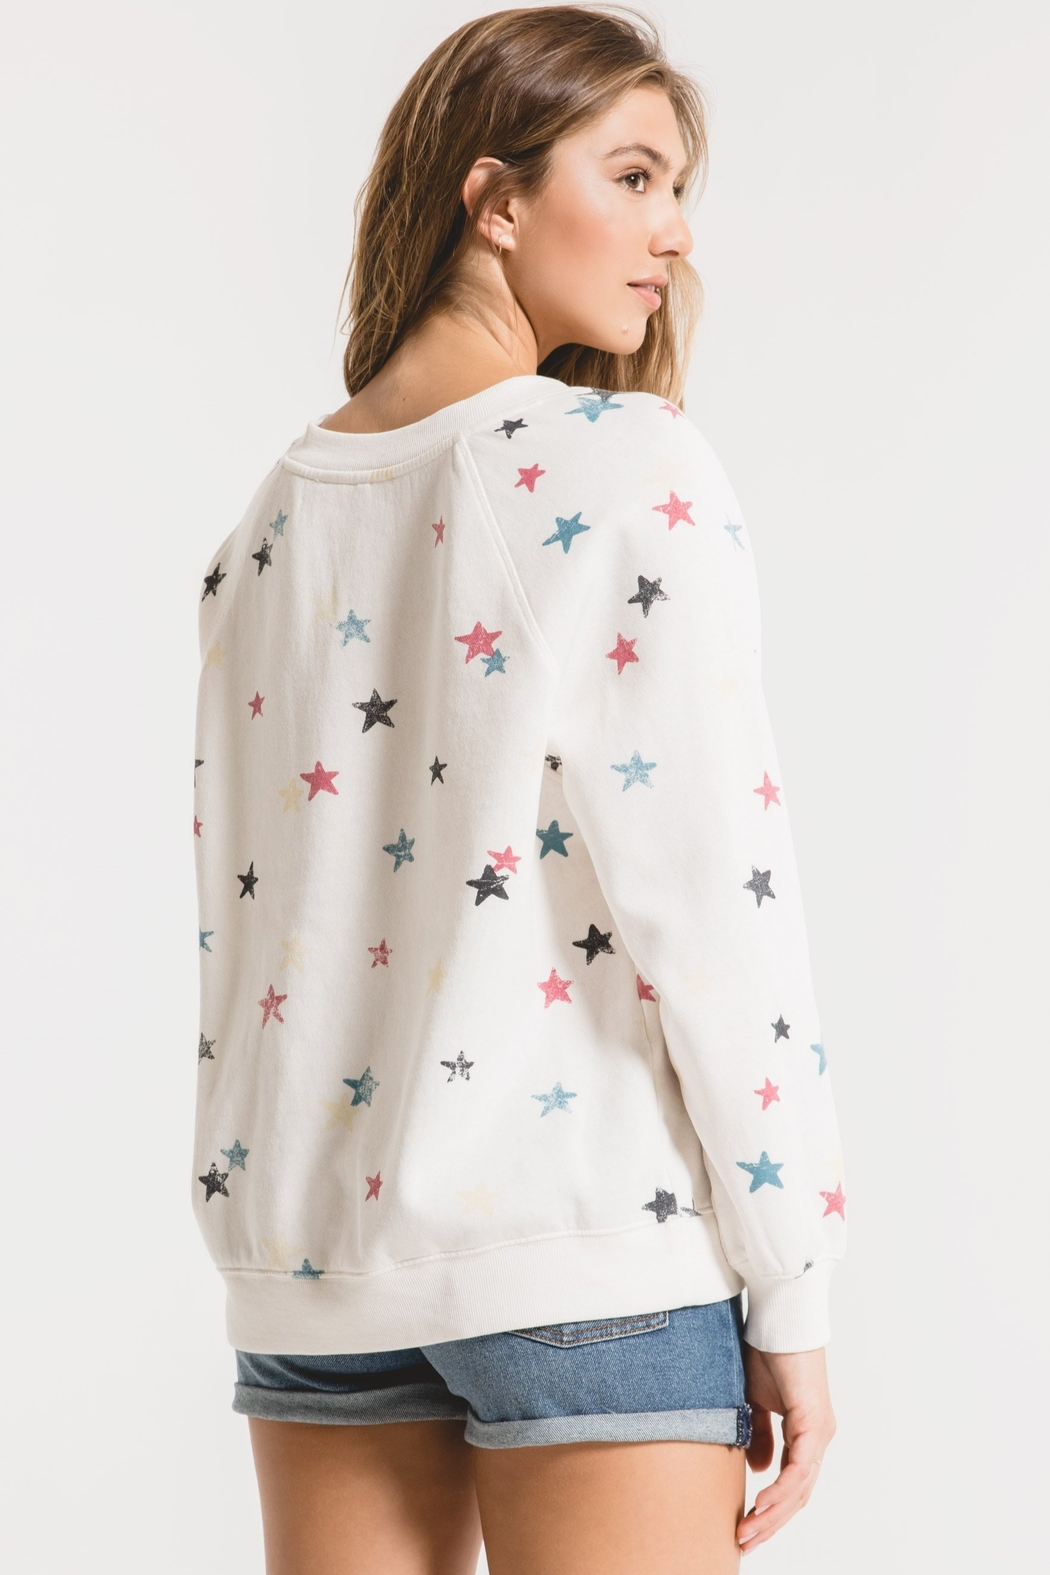 z supply Distressed Star Sweatshirt - Side Cropped Image